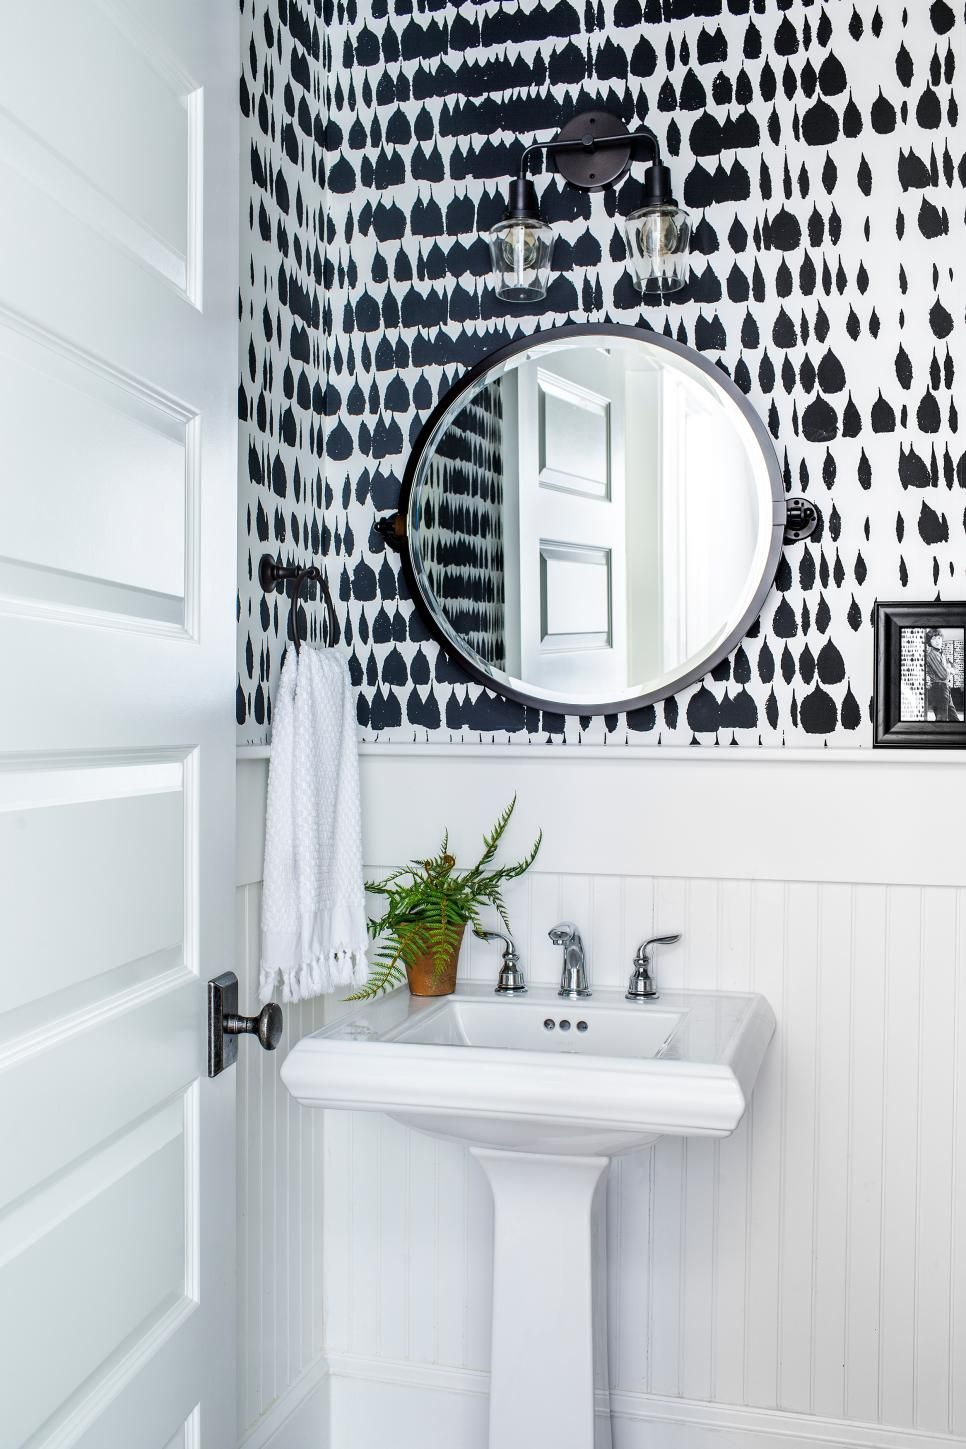 15 cheap ways to freshen up your bathroom this weekend rh pinterest com